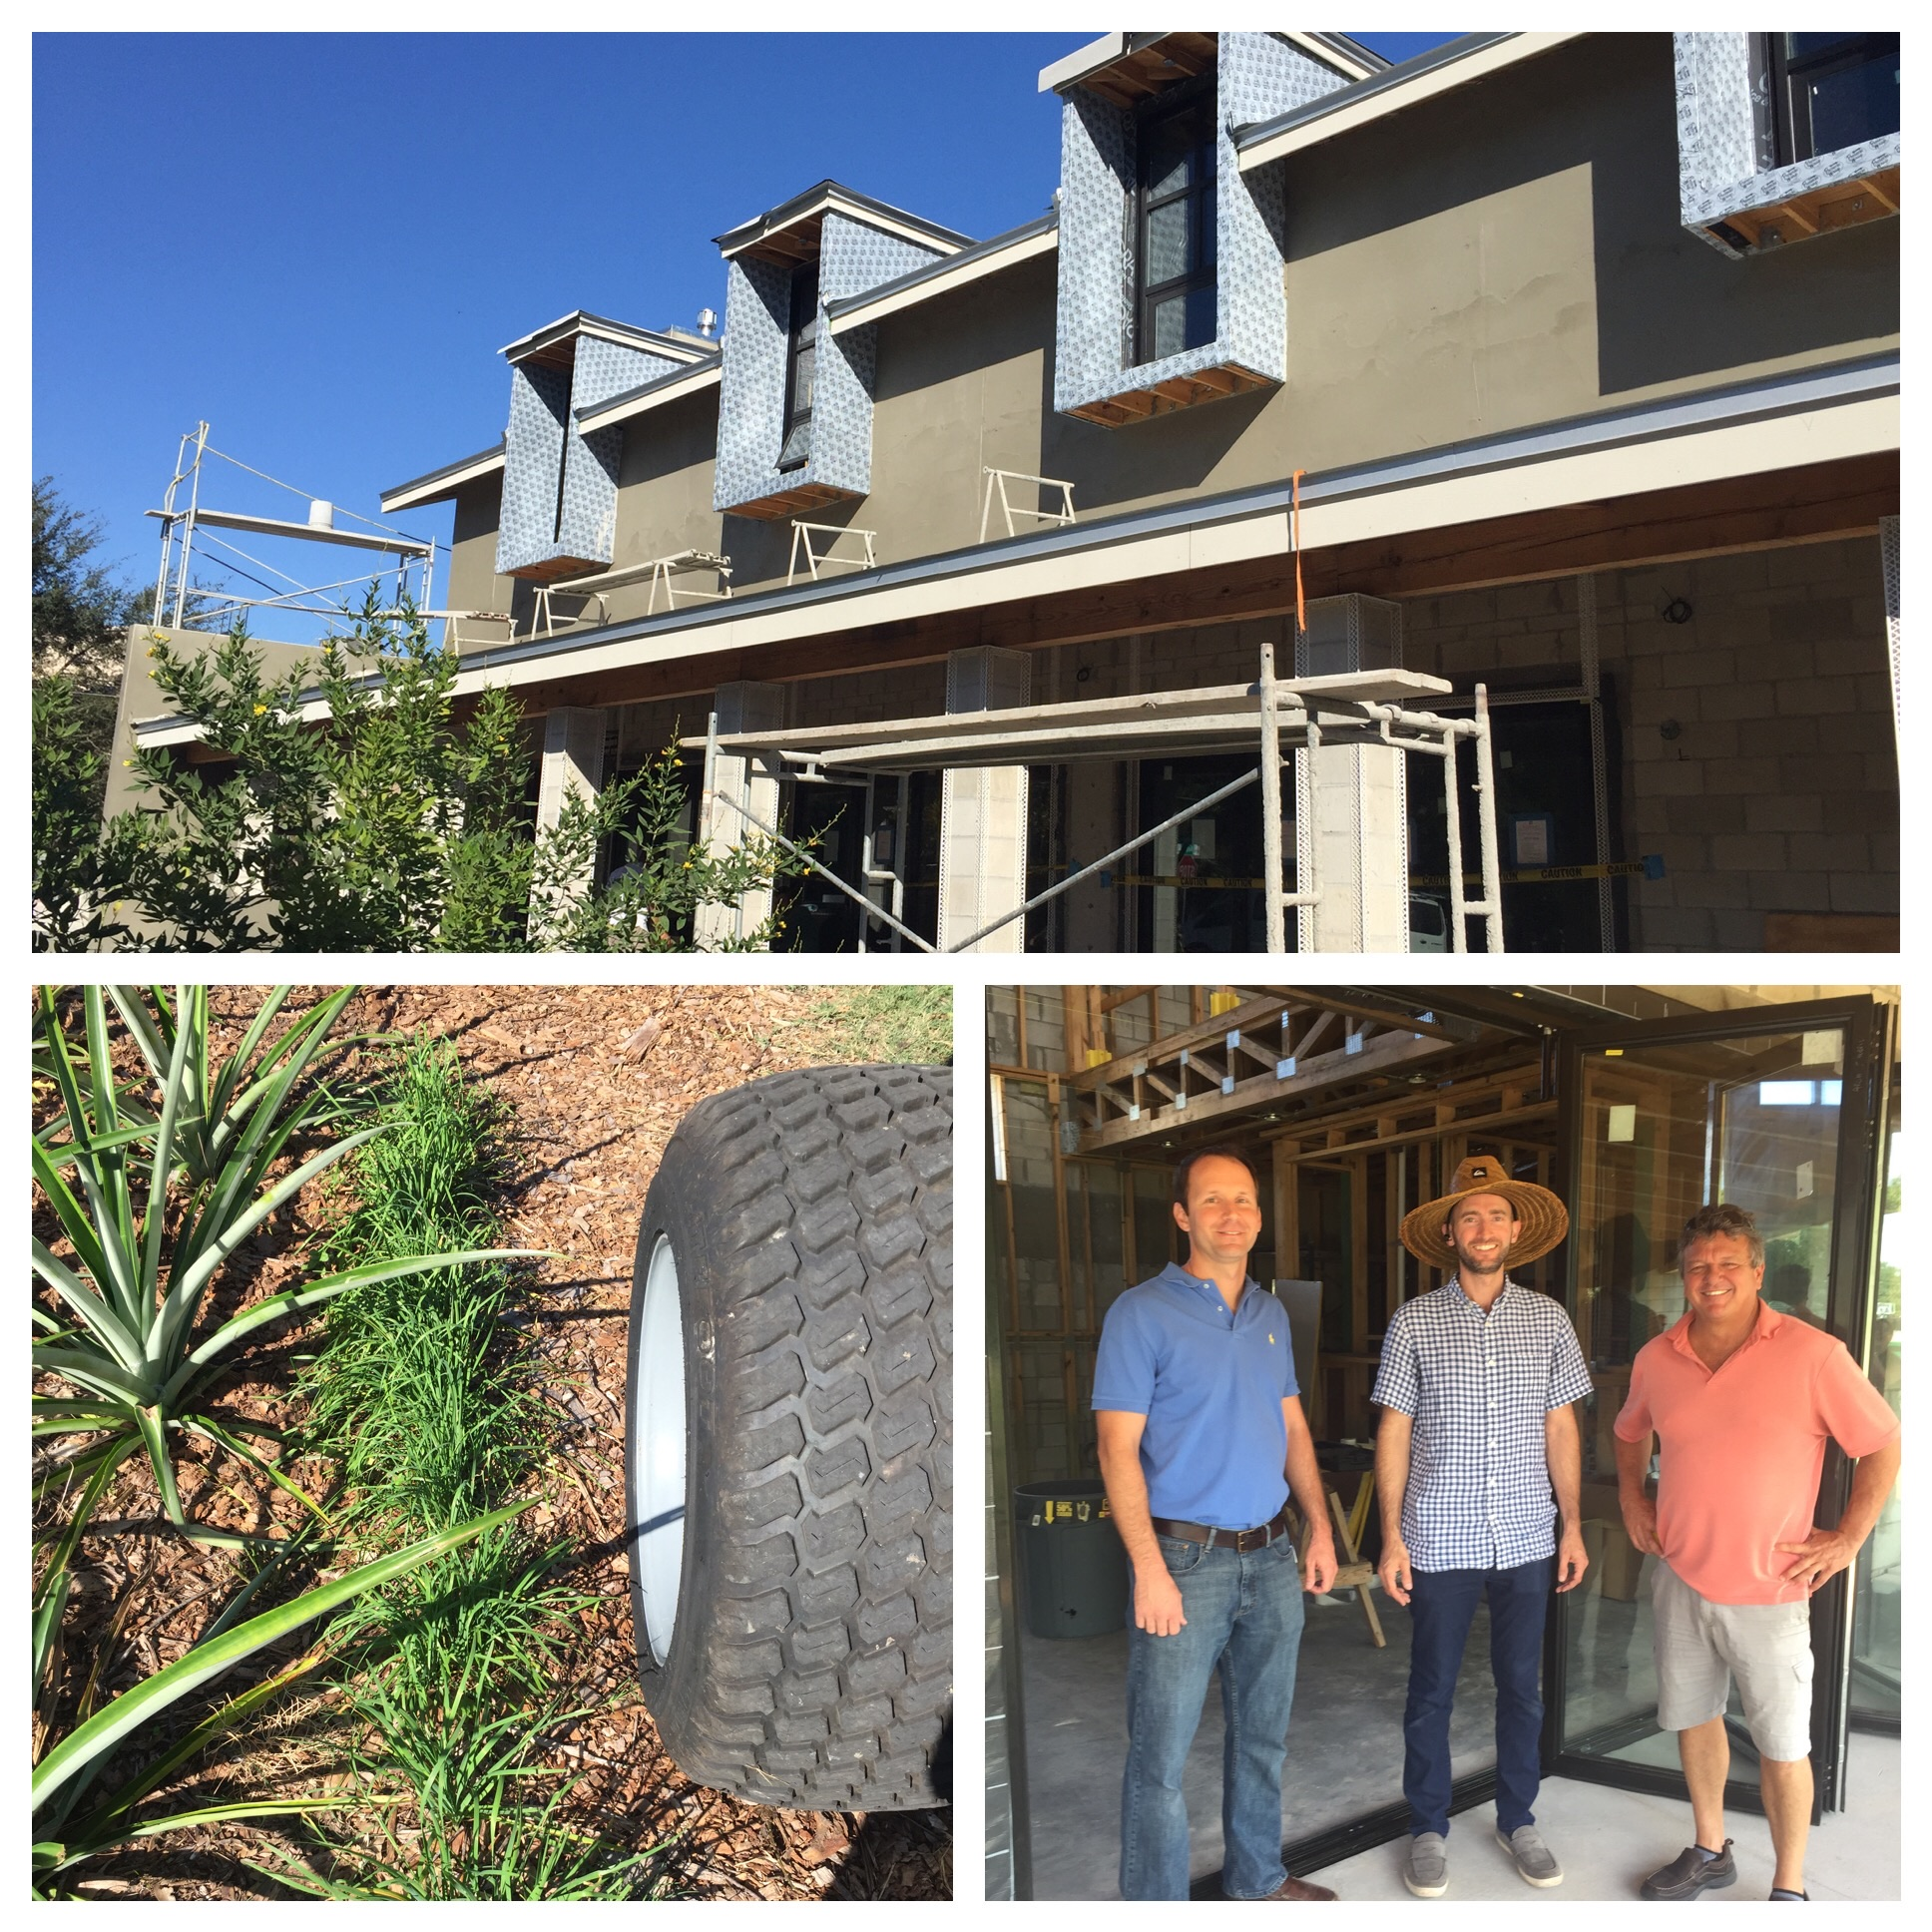 General Contractor, Rob Smith of E2Homes, along with project managers, Matt Cox and Jan Vandegriff.